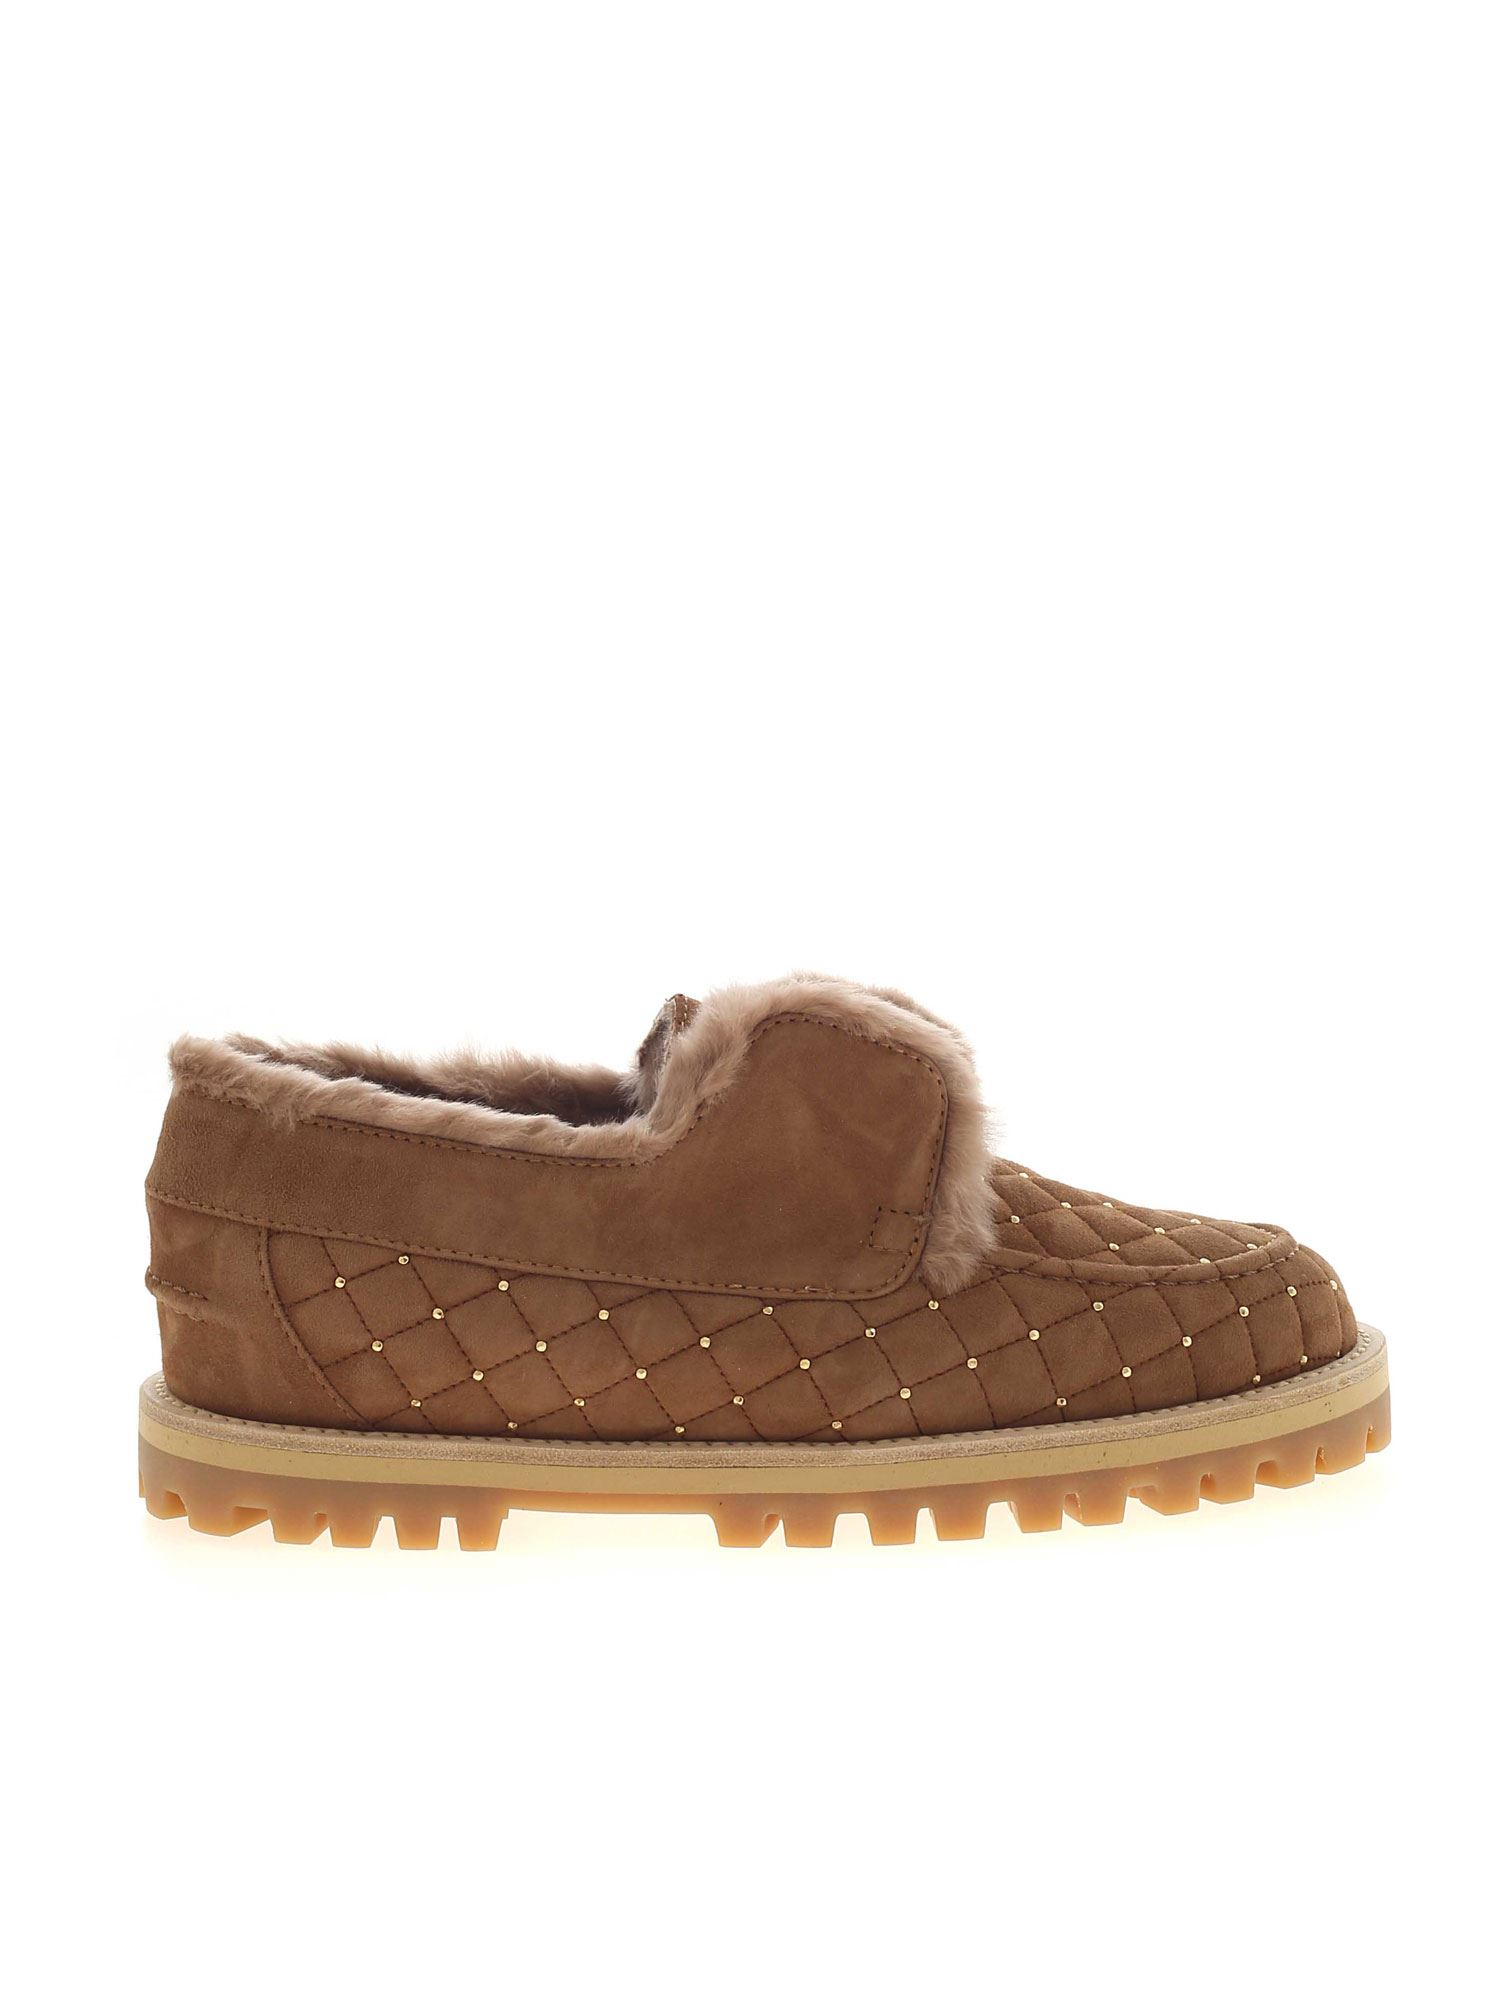 Le Silla YACHT BROWN LOAFERS FEATURING MINI STUDS